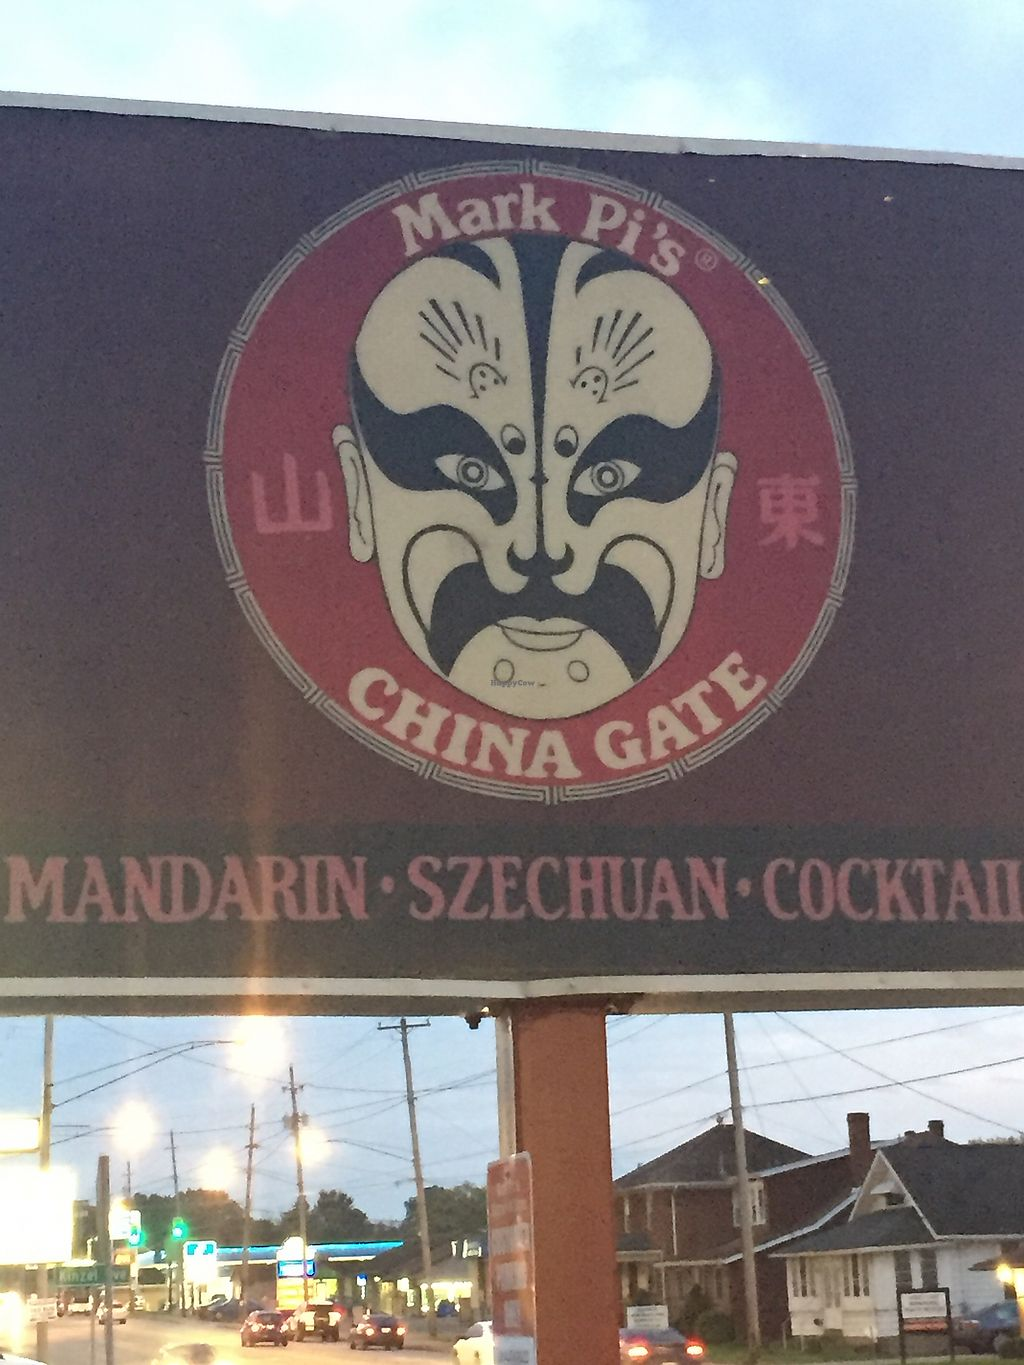 """Photo of Mark Pi's China Gate  by <a href=""""/members/profile/KristenRenee"""">KristenRenee</a> <br/>Mark Pis <br/> October 25, 2017  - <a href='/contact/abuse/image/70396/318900'>Report</a>"""